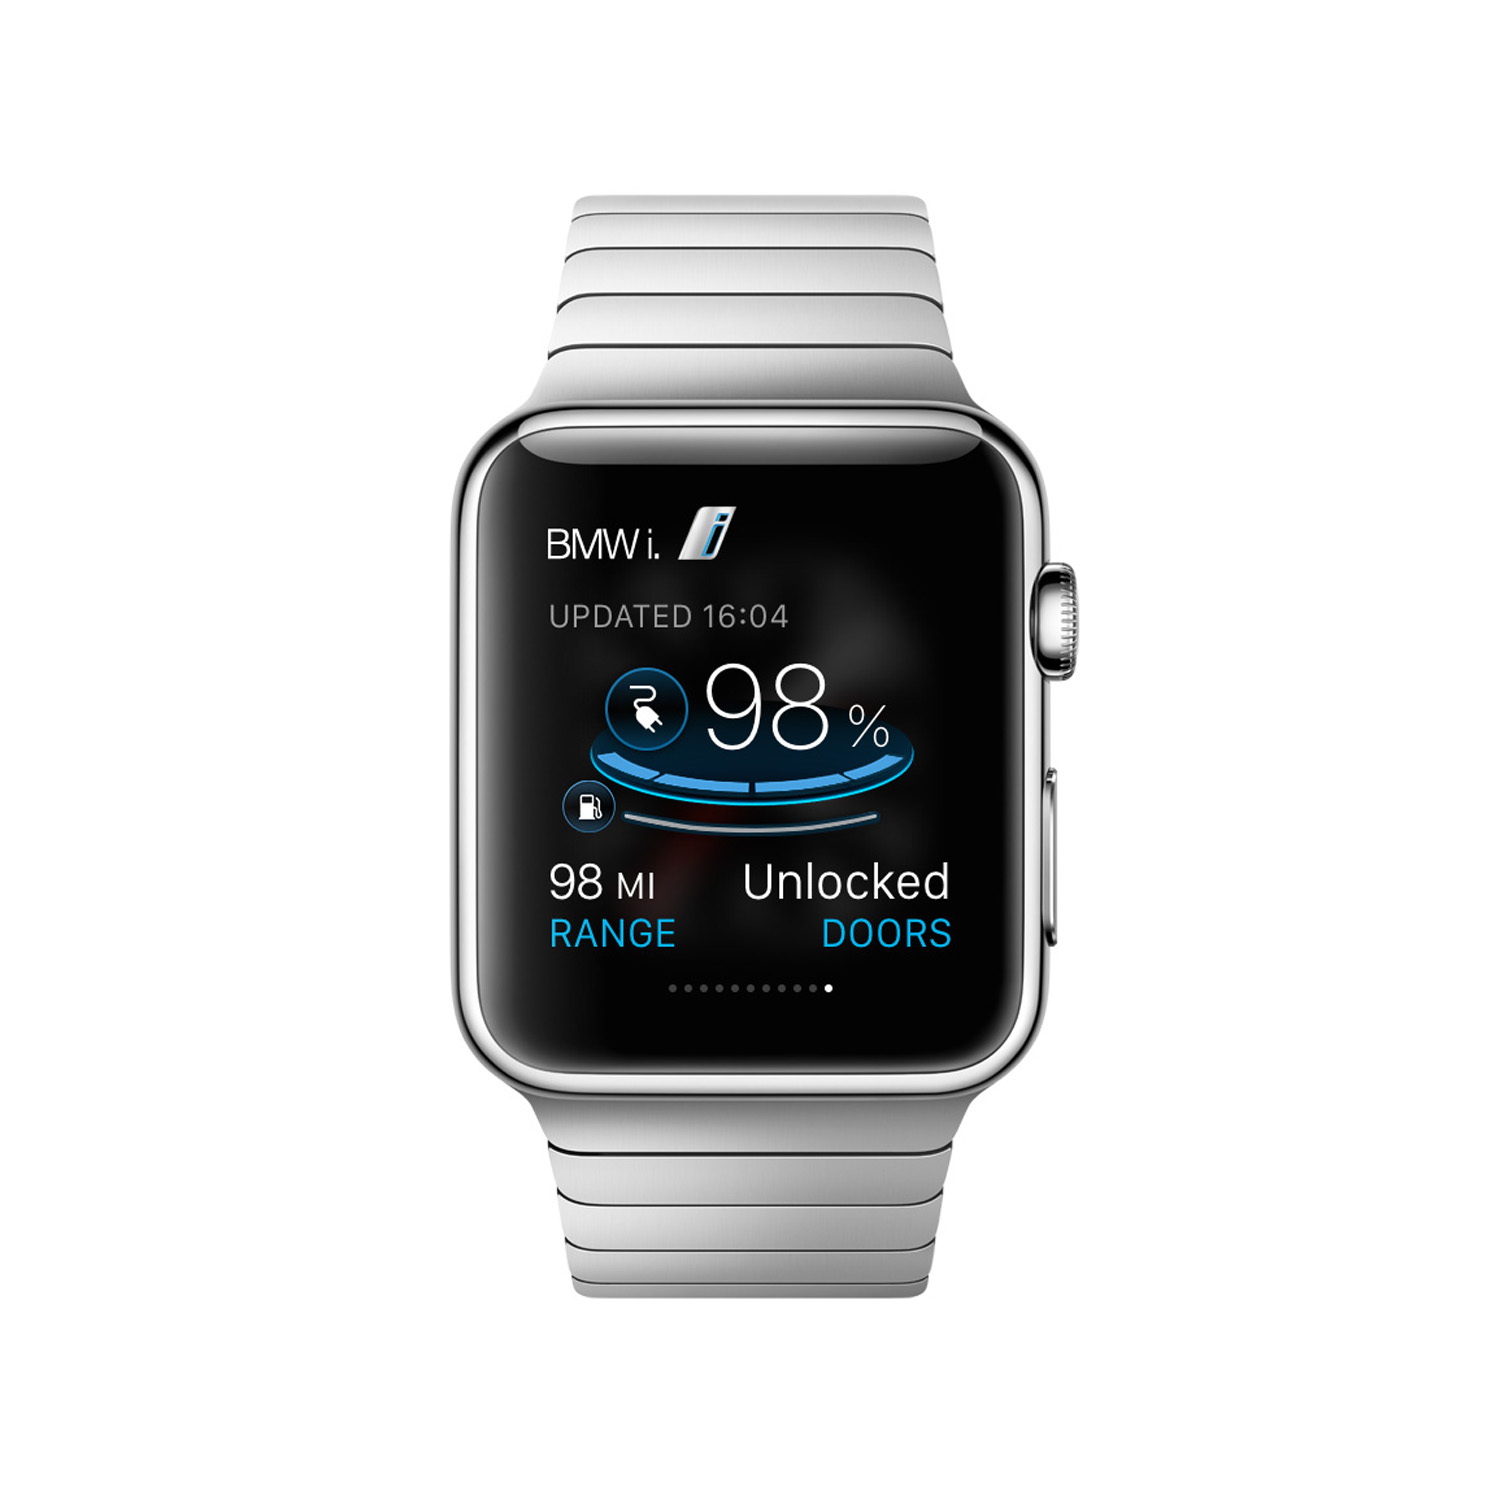 BMW Launches i Remote App for Apple Watch - autoevolution